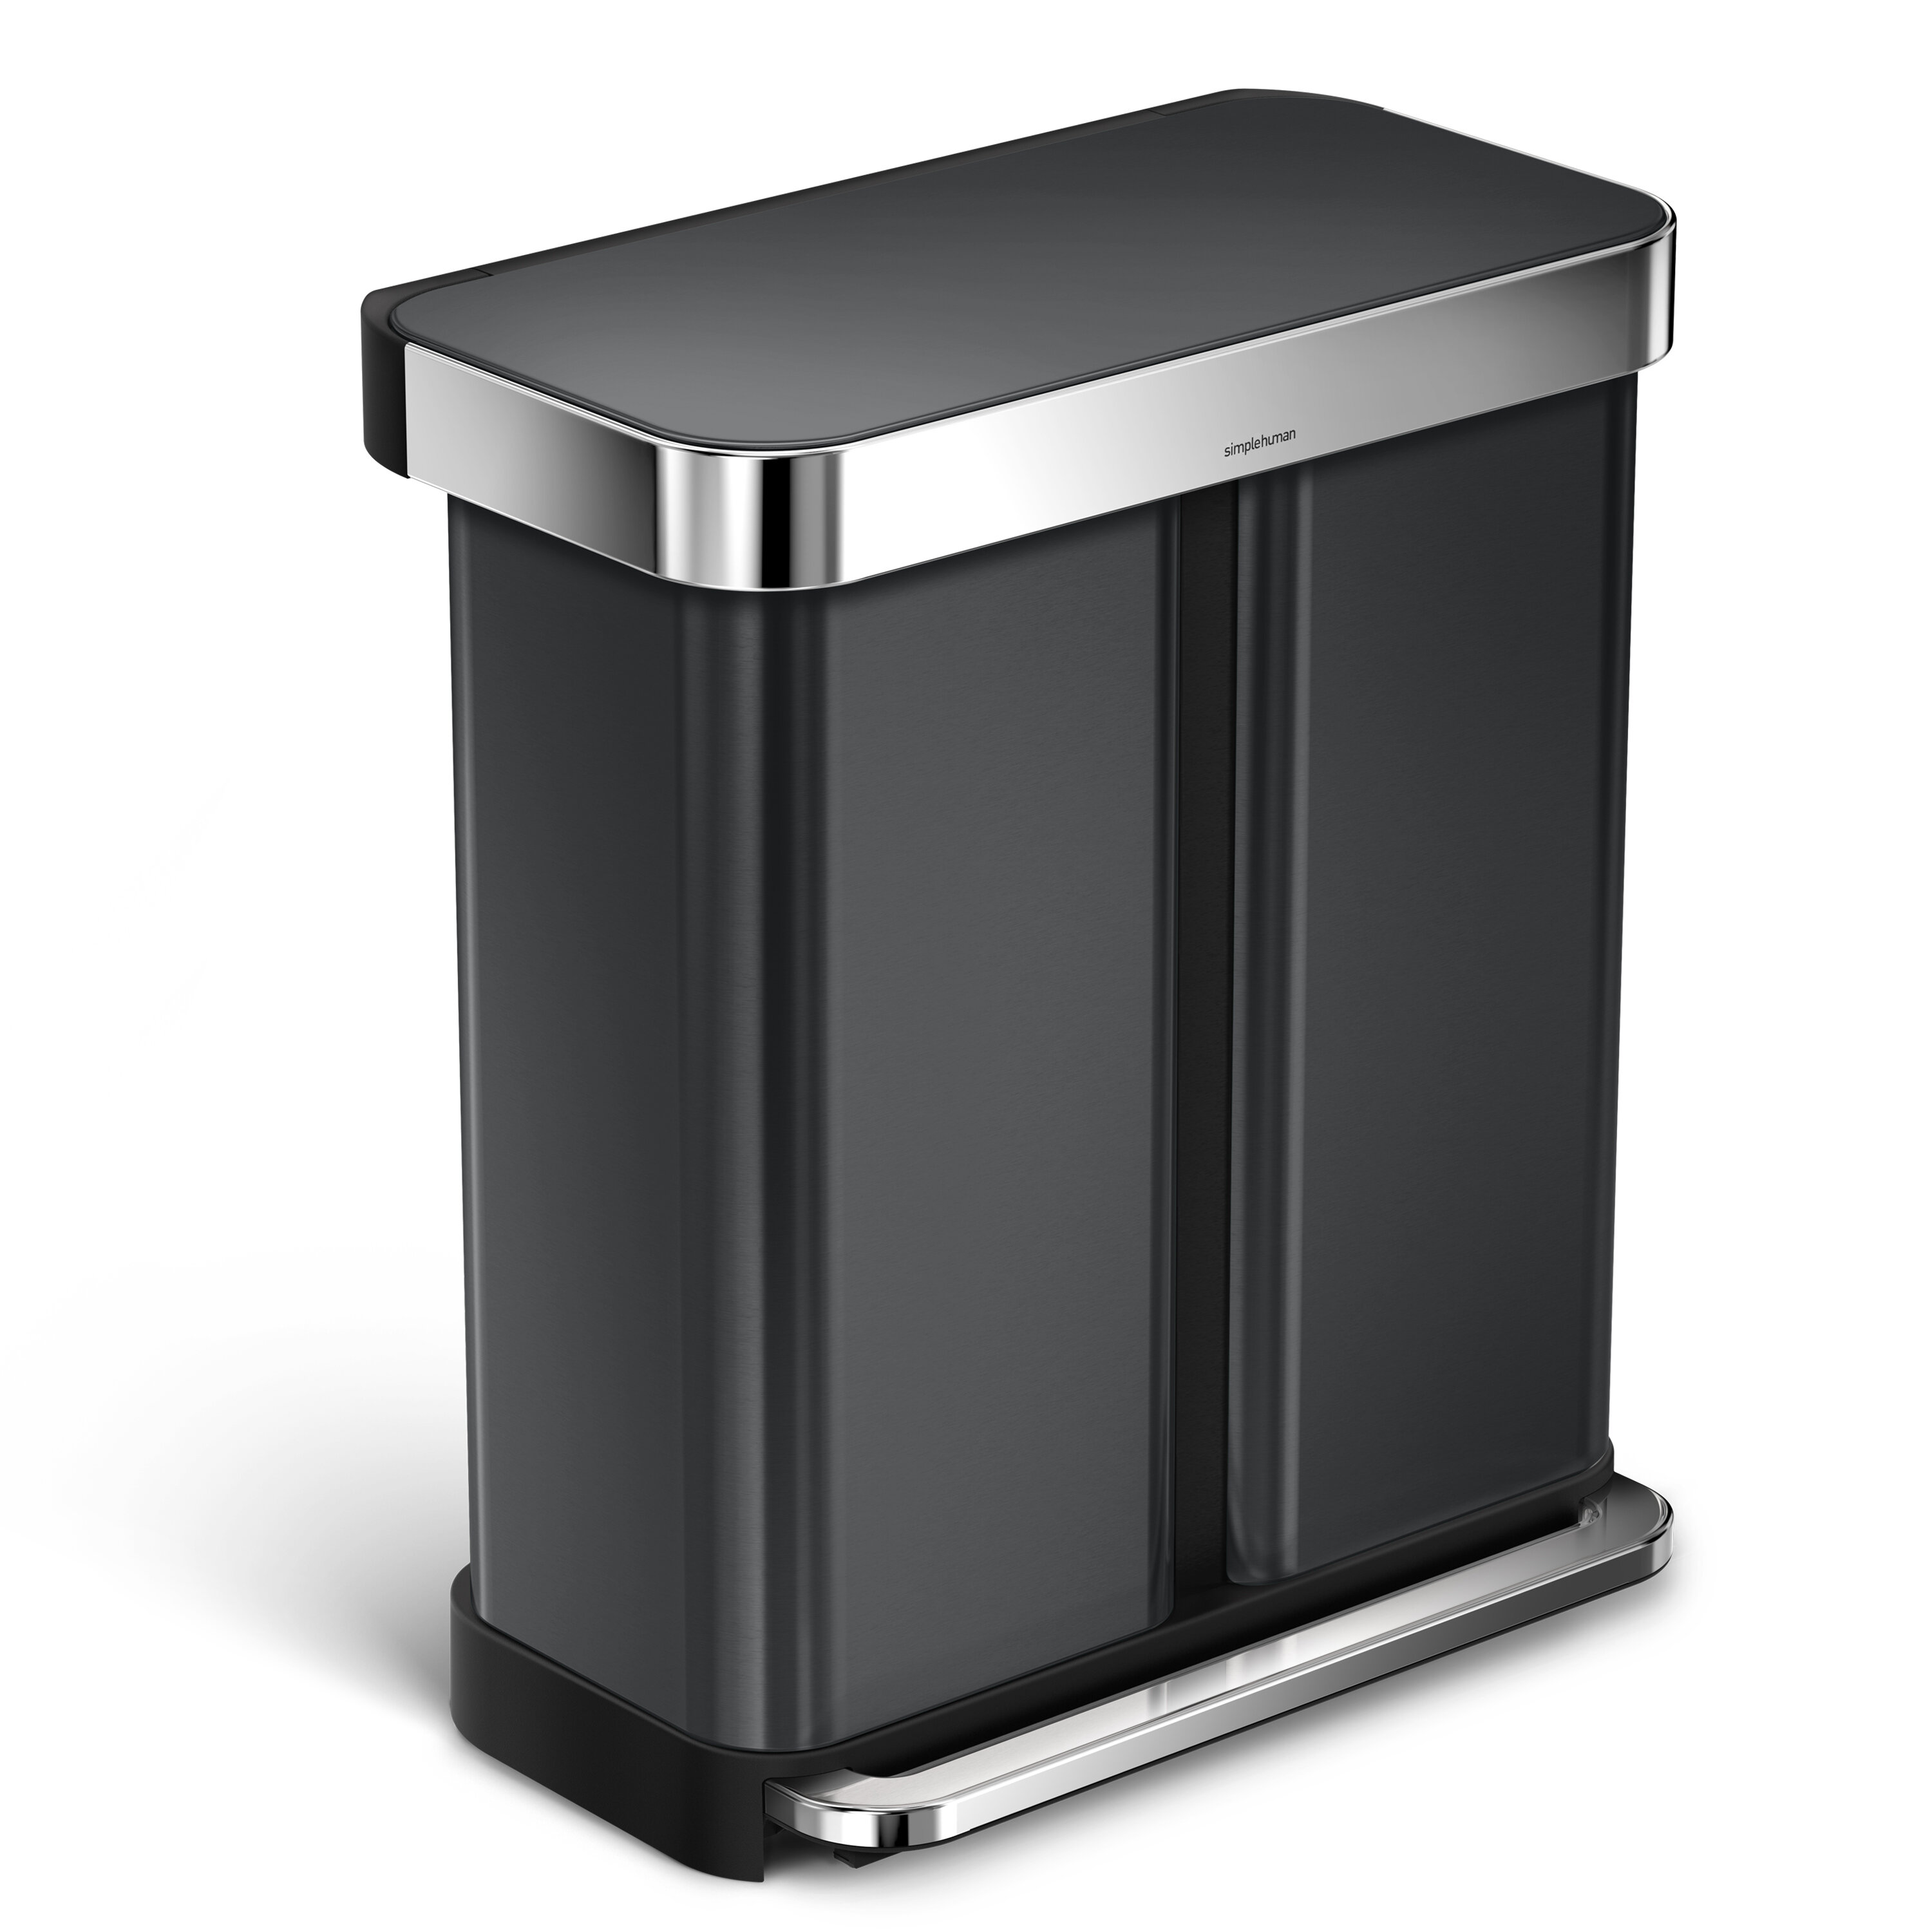 Simplehuman 58 Liter Dual Compartment Rectangular Step Stainless Steel Trash Can With Liner Pocket Recycling Reviews Wayfair